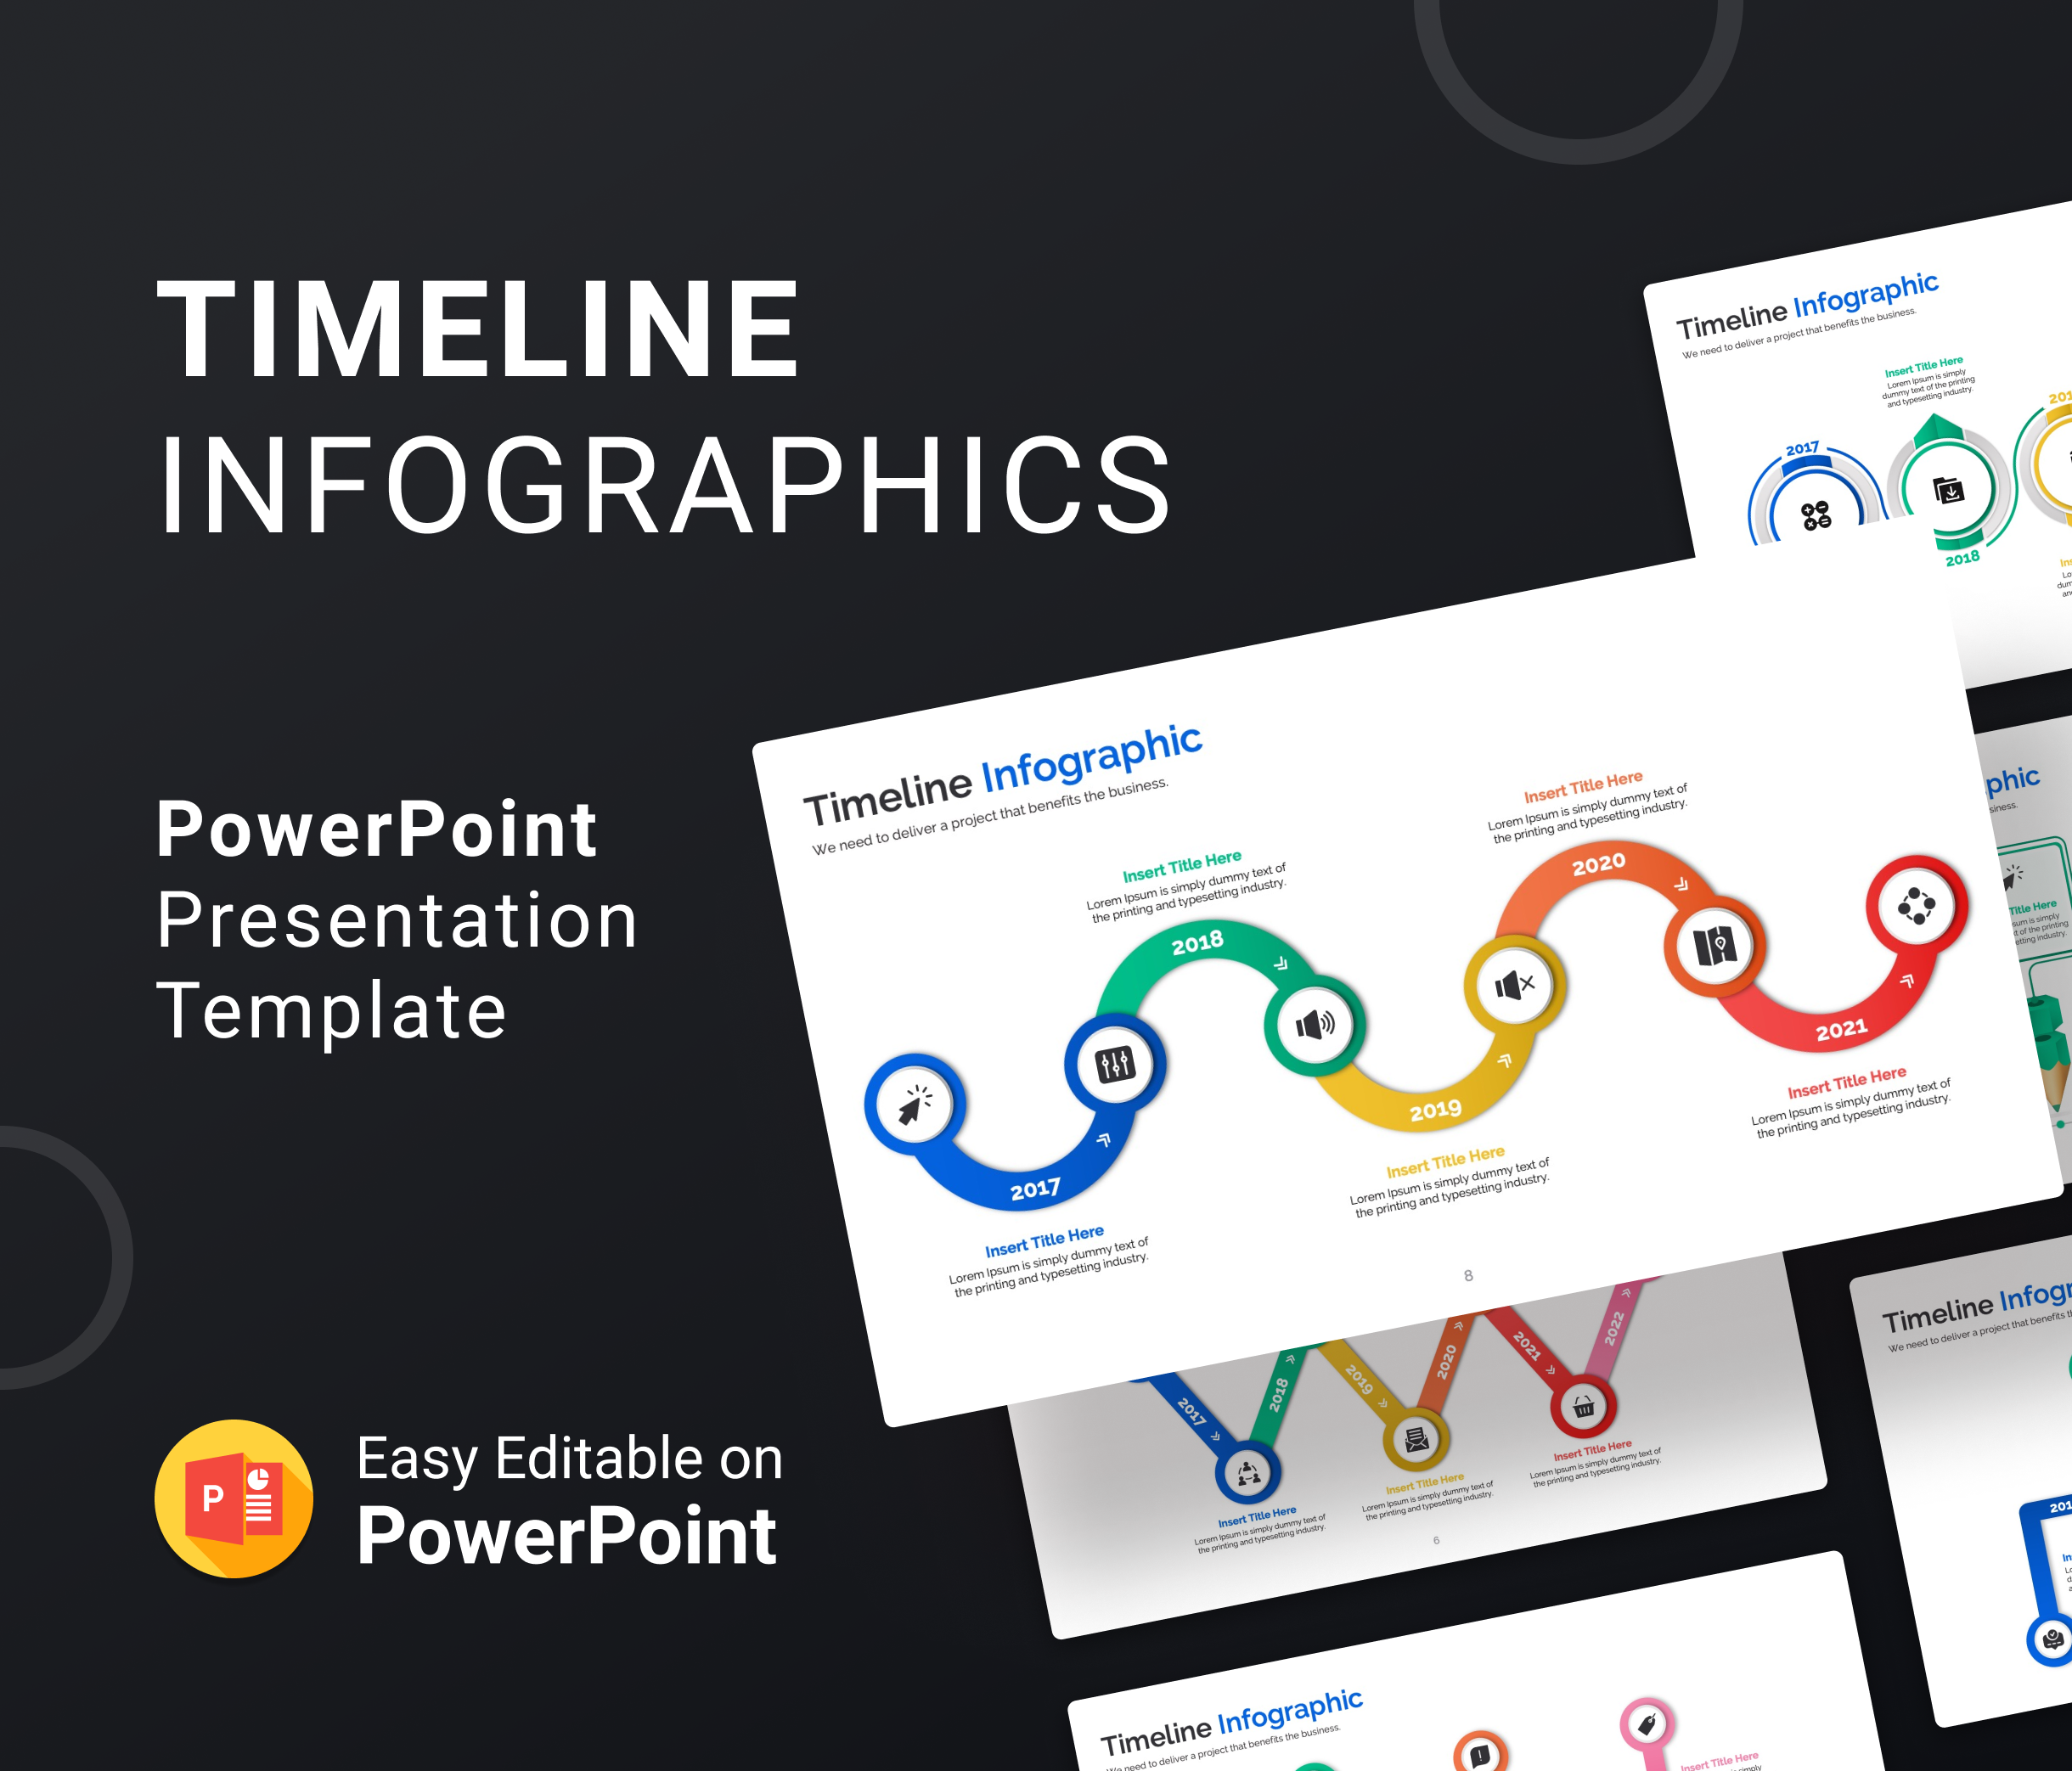 Timeline Infographics – PowerPoint Presentation Template